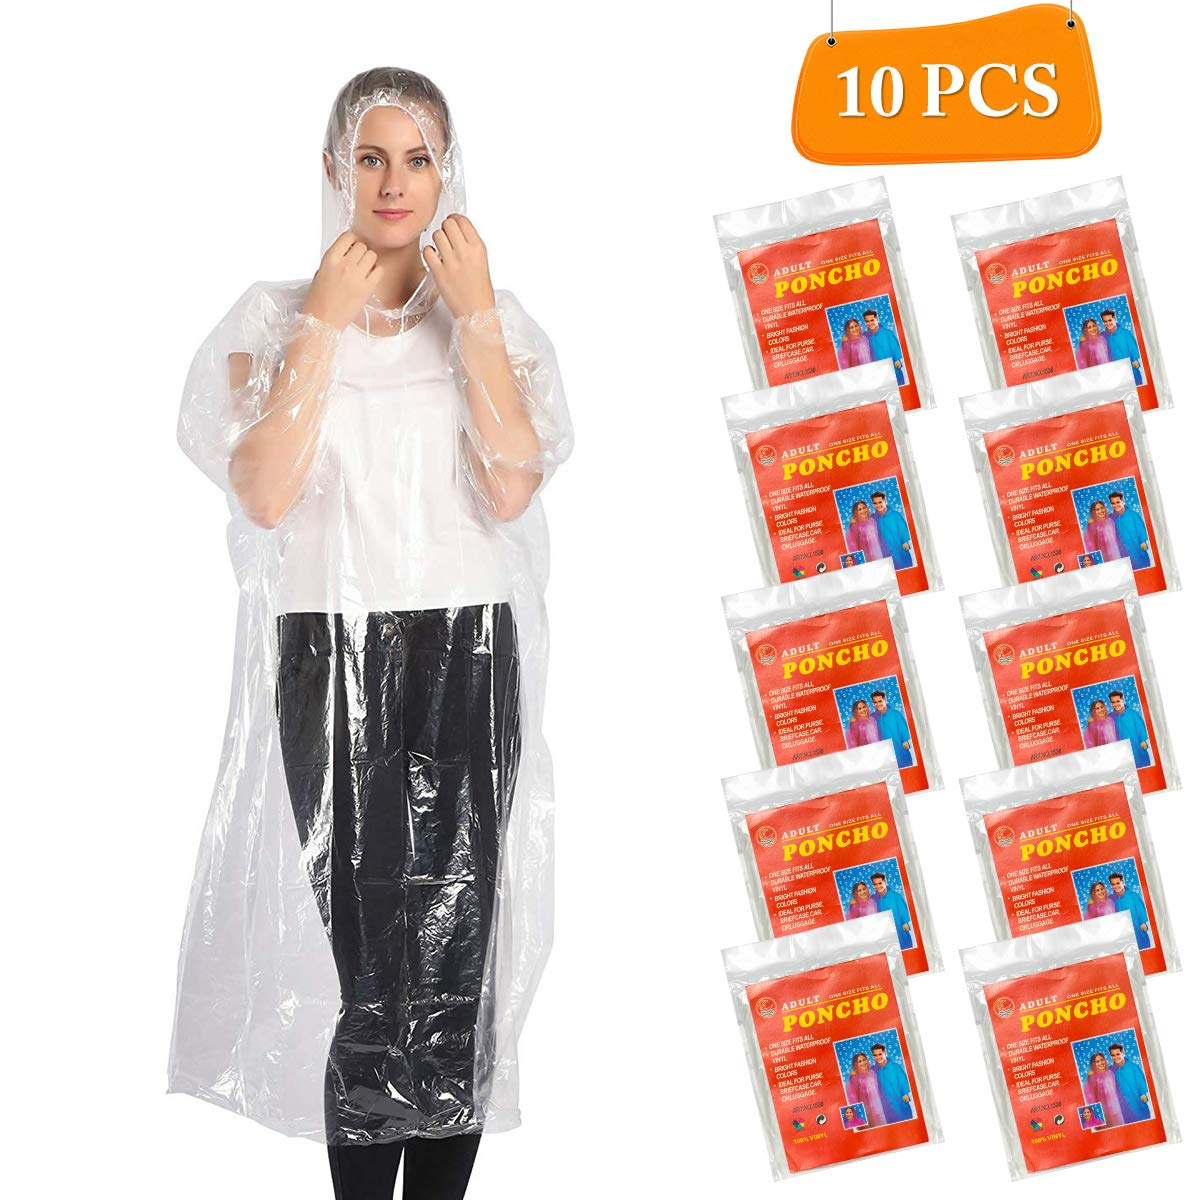 Elebor Emergency Waterproof Disposable Rain Ponchos - 10 Pack Portable Family Journey Rain Ponchos for Adults Men and Women, Perfect for Disney, Can Cover The Backpack, Thicked (White Clear)